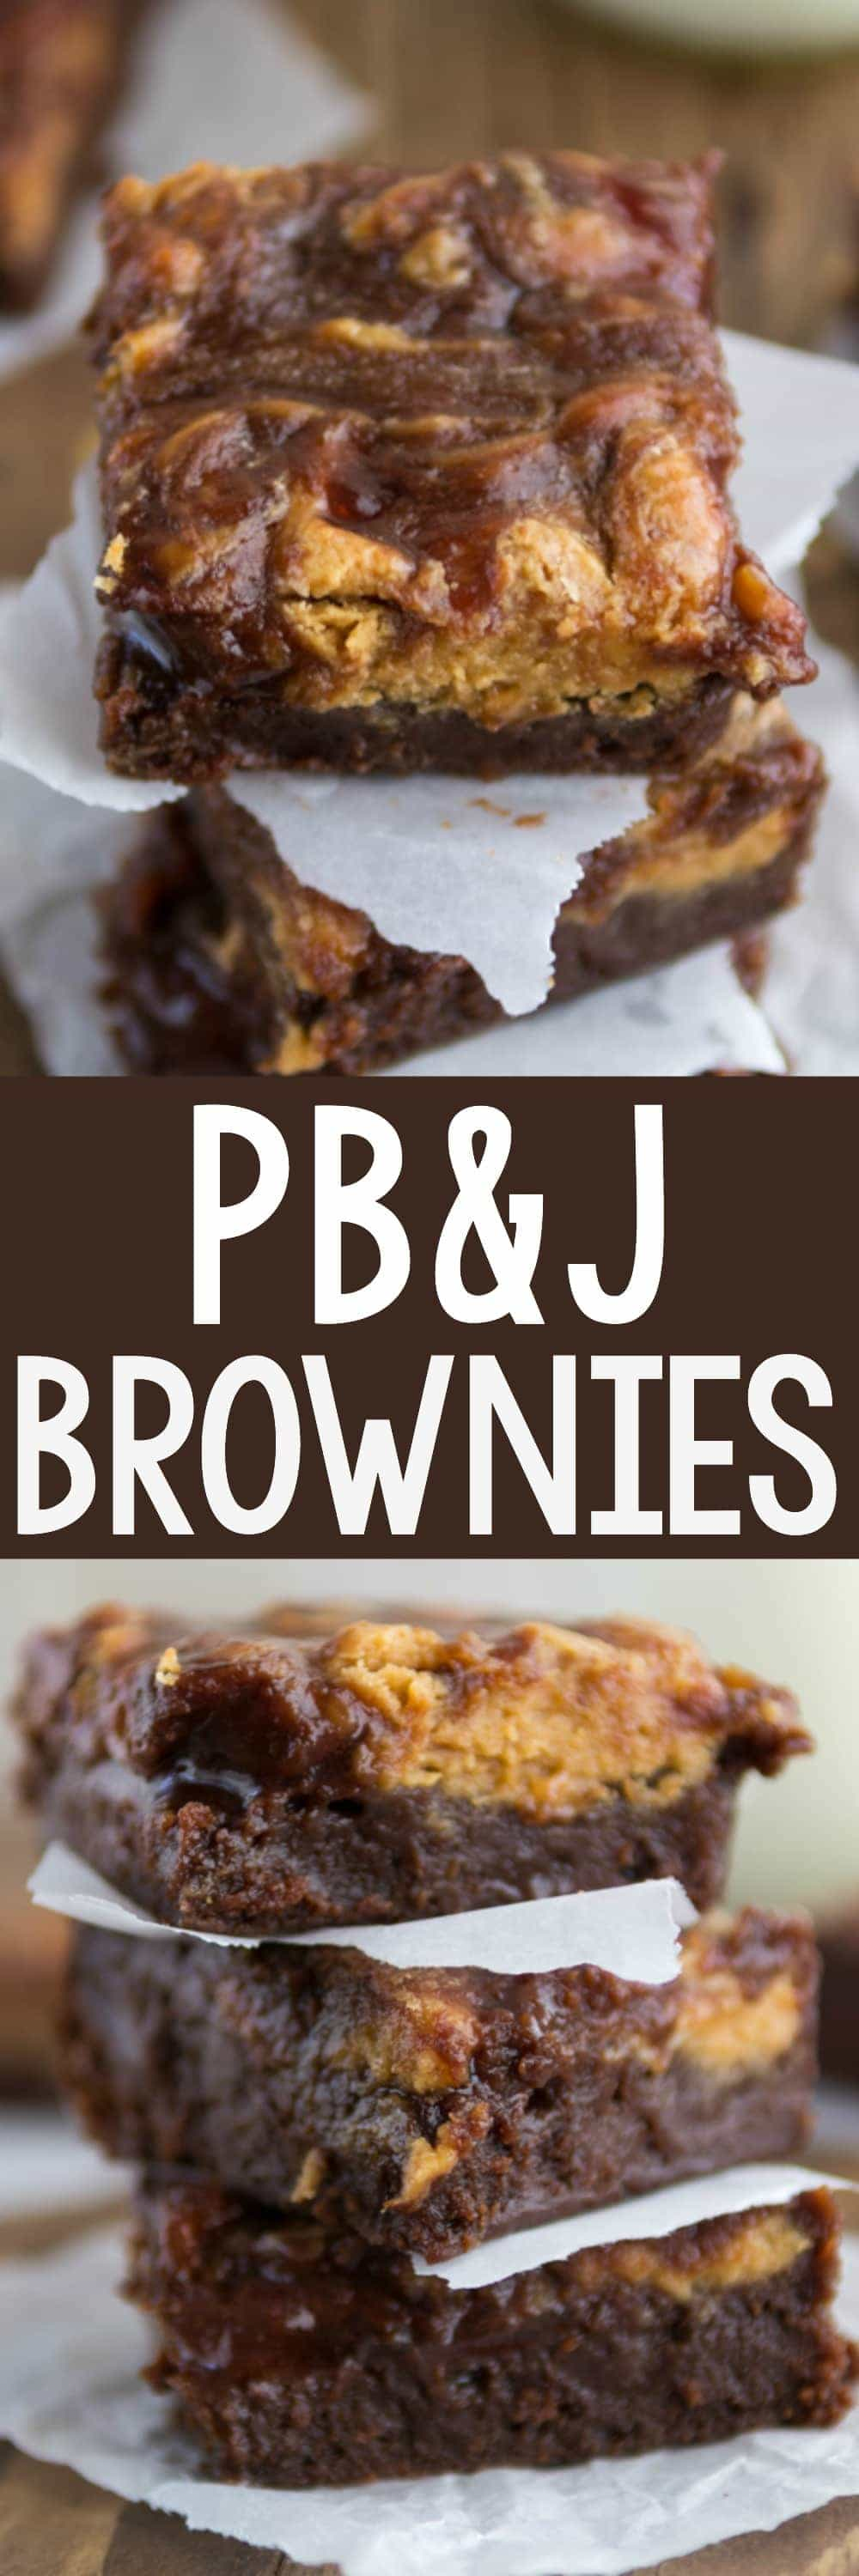 Peanut Butter and Jelly Brownies - this easy brownie recipe is full of peanut butter and jelly! PB&J goes so well with chocolate...and everyone loves brownies!